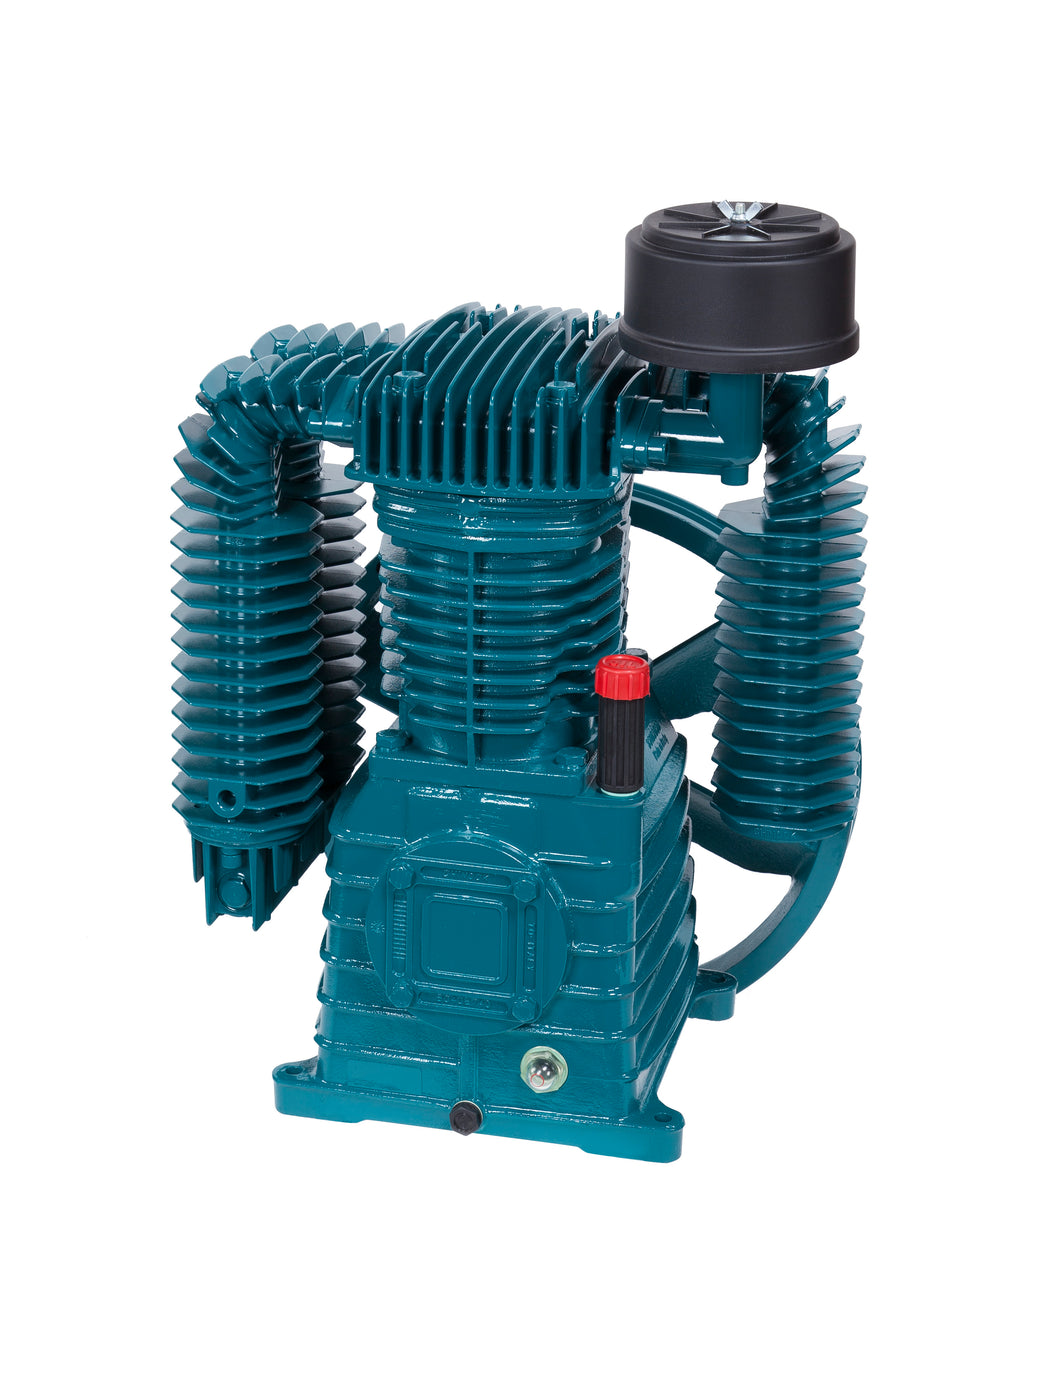 TECHQUIP AIR BOSS TQ30 Two-Stage Pump